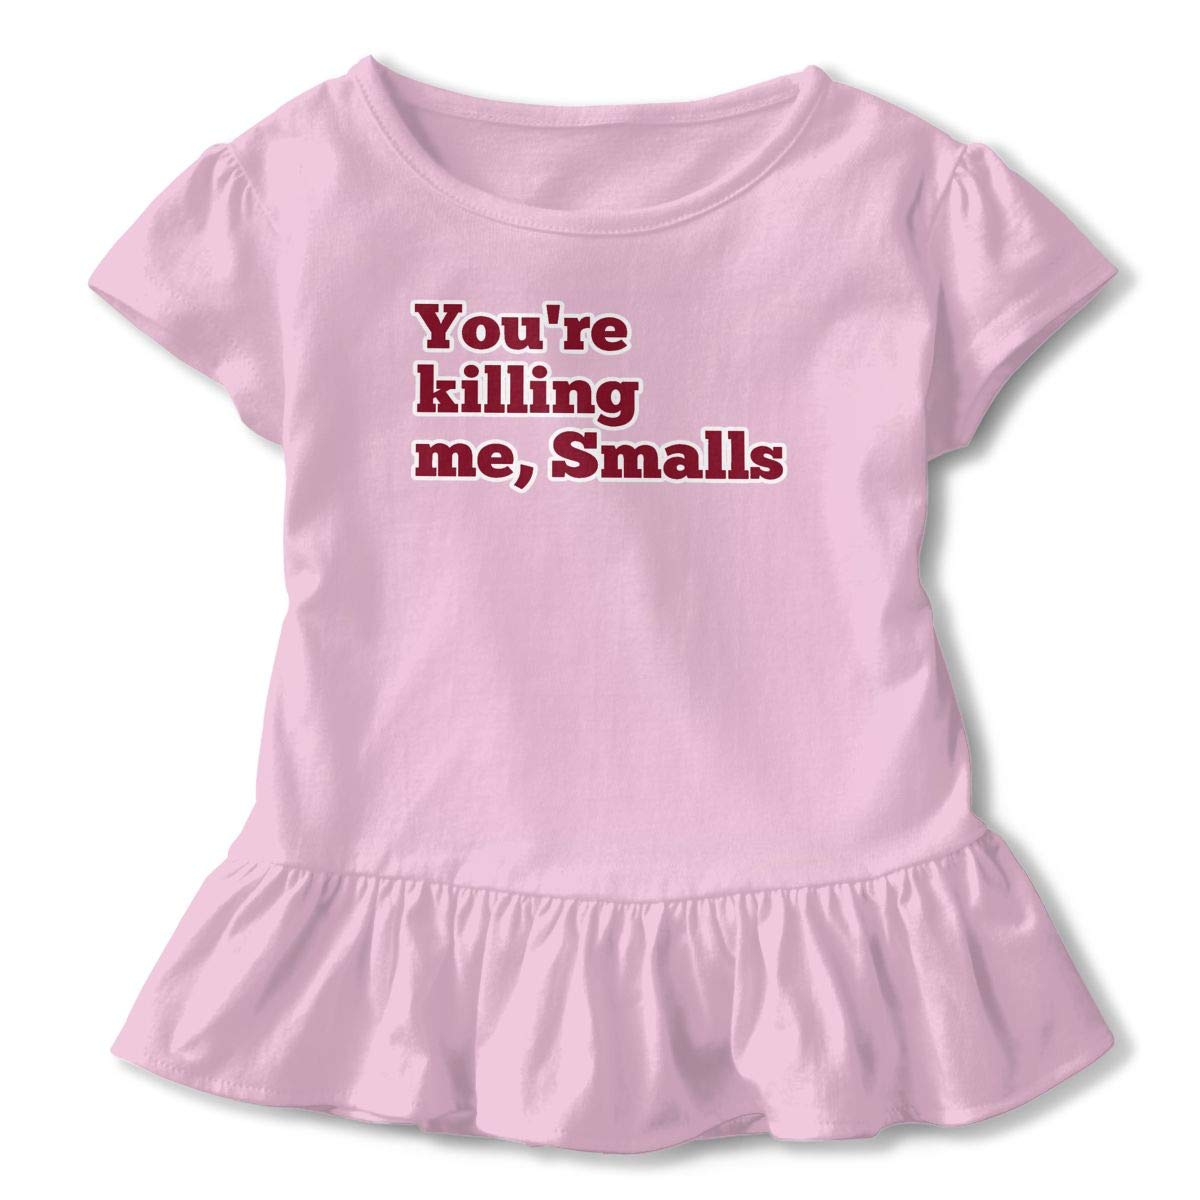 ZP-CCYF Youre Killing Me Smalls Toddler Baby Girl Ruffle Short Sleeve T-Shirt Comfortable Cotton T Shirts